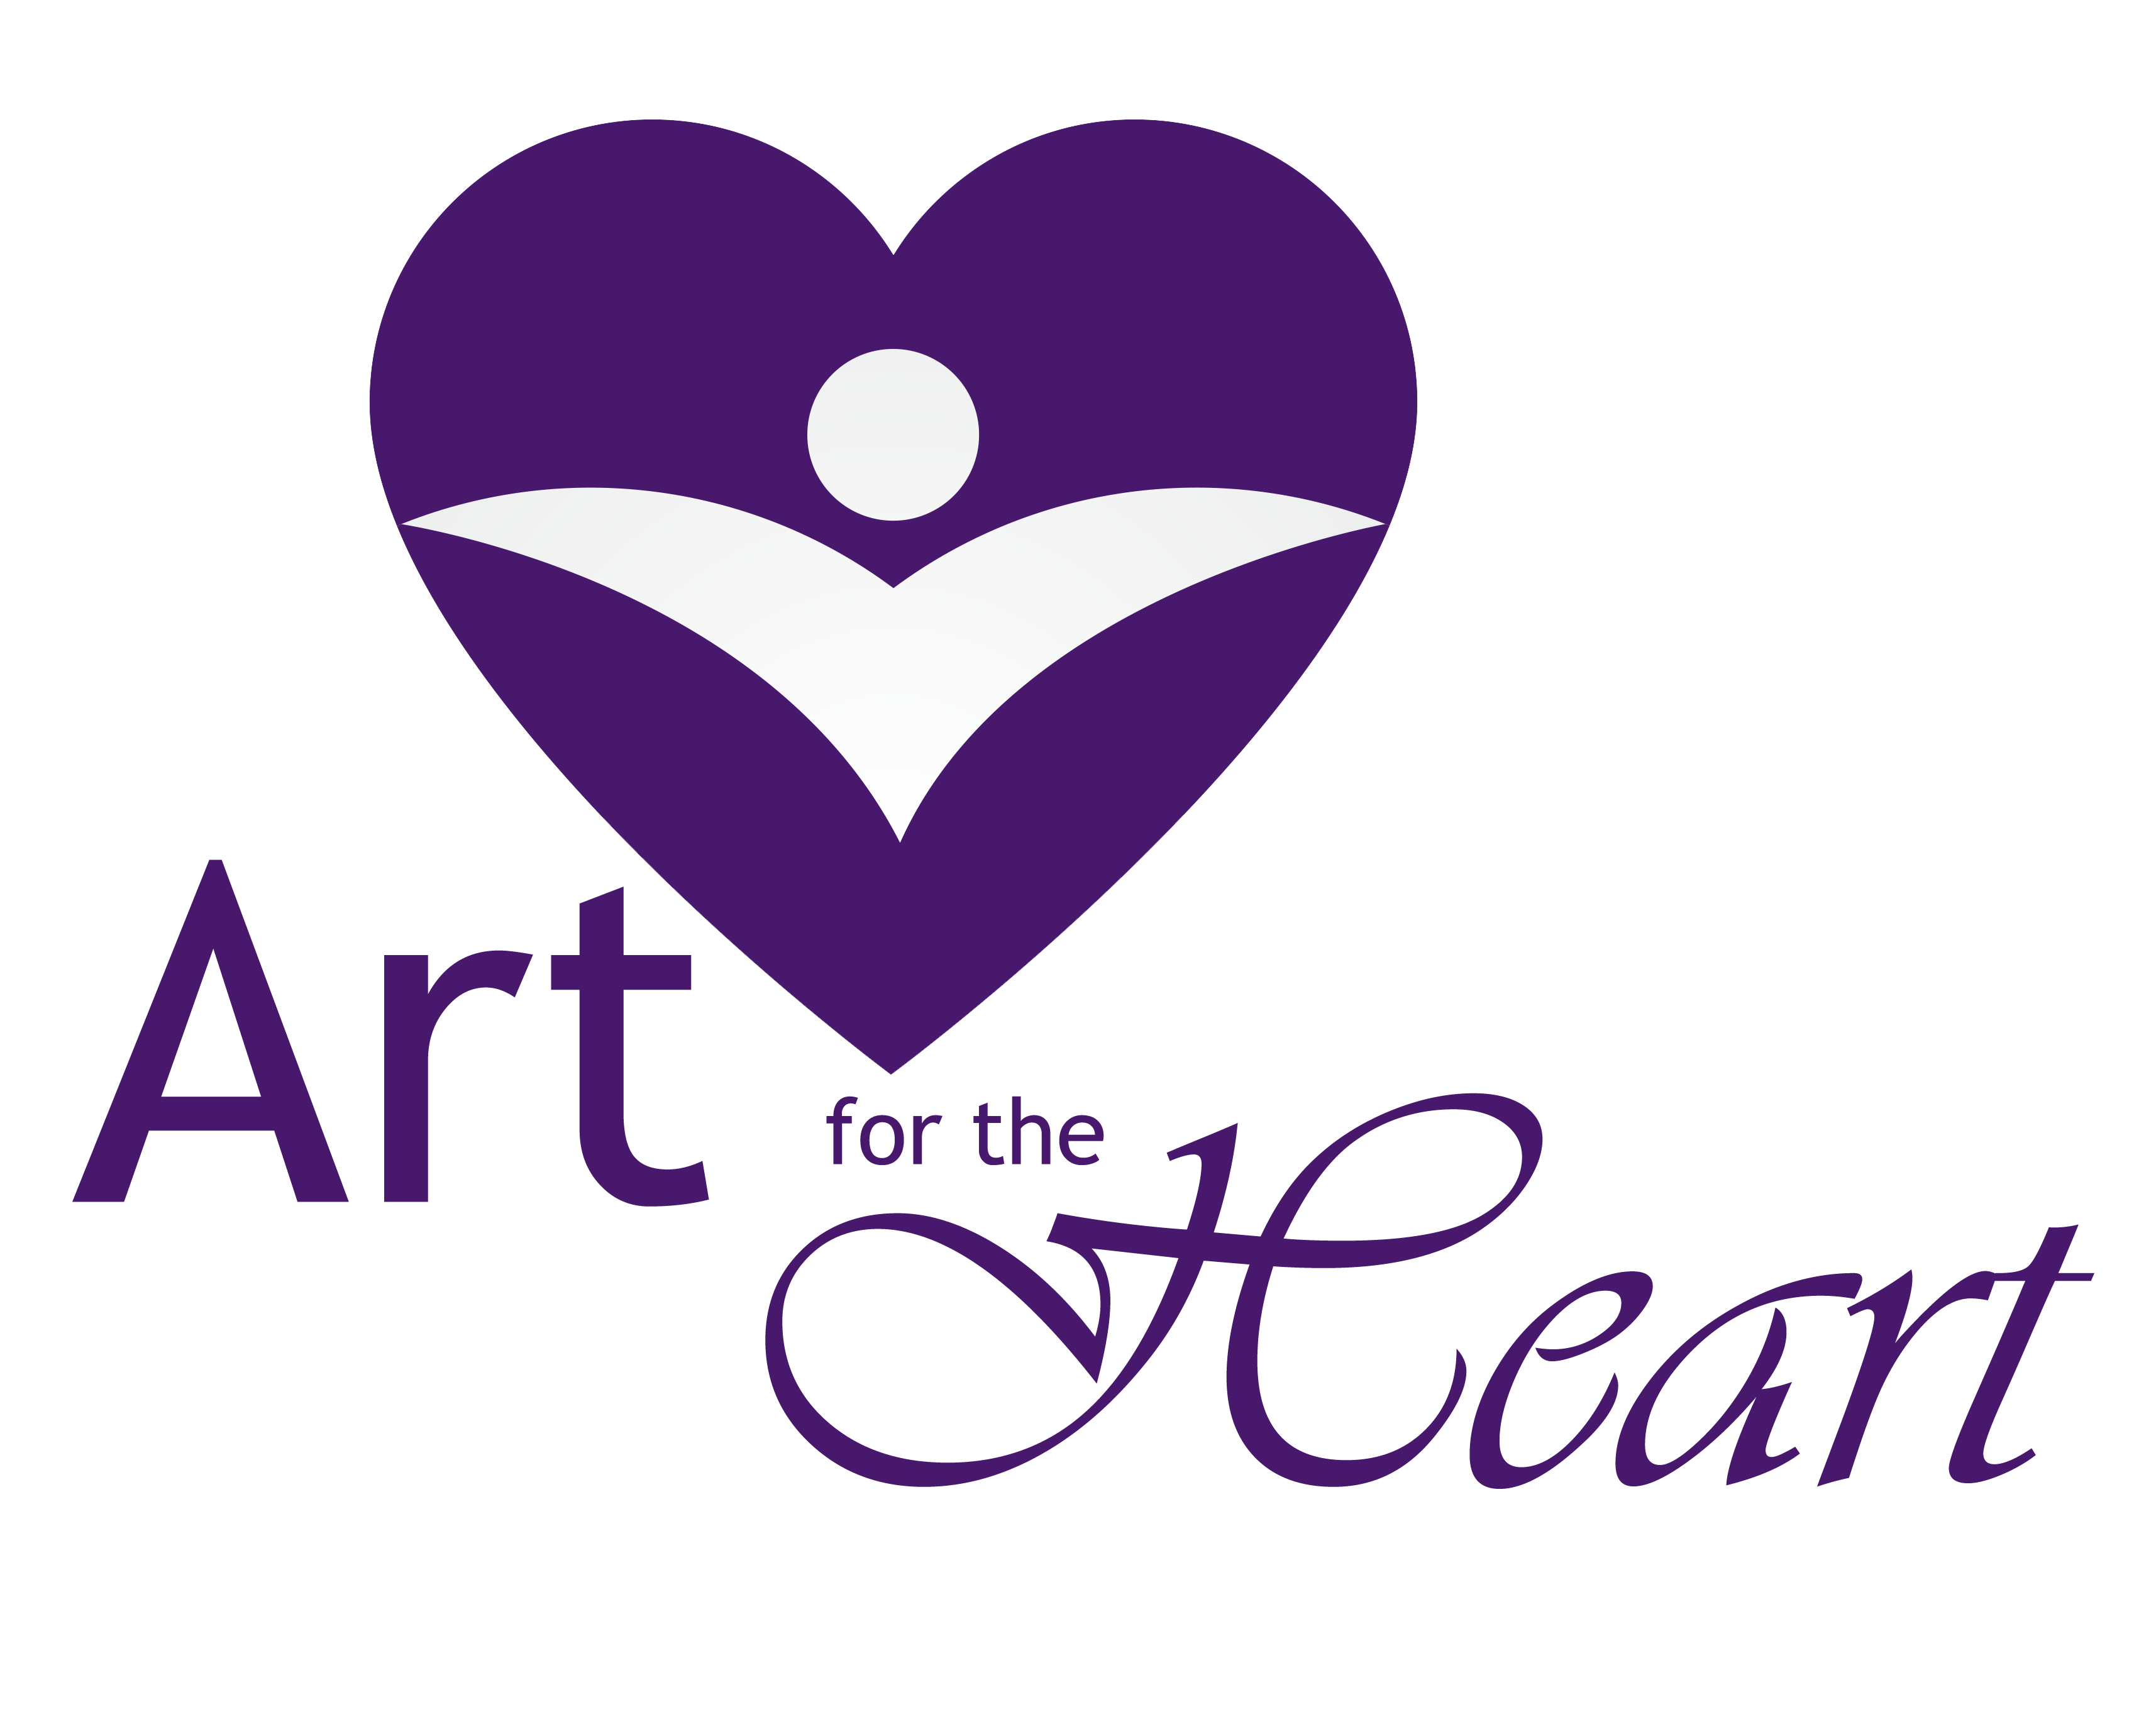 Community transparent heart. Art for the supports